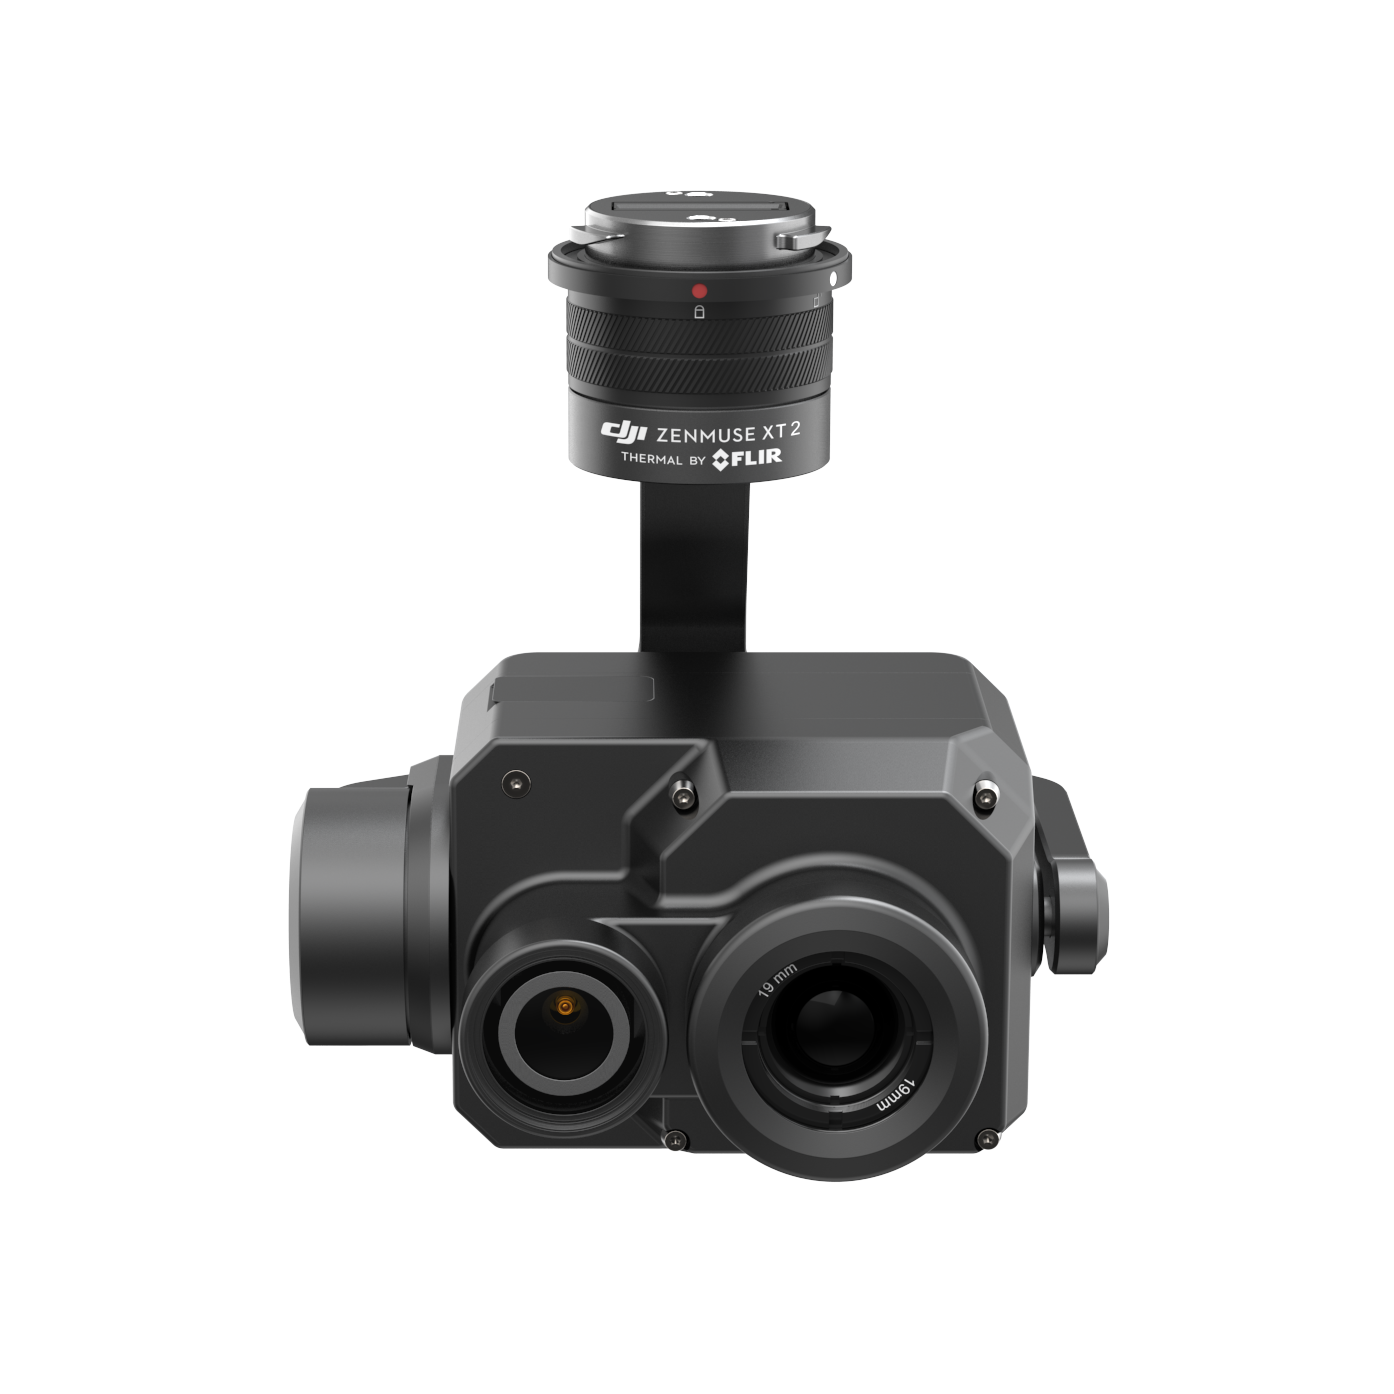 DJI Zenmuse XT2 Dual 4K & FLIR Thermal Camera - 640x512 30Hz 13mm Lens